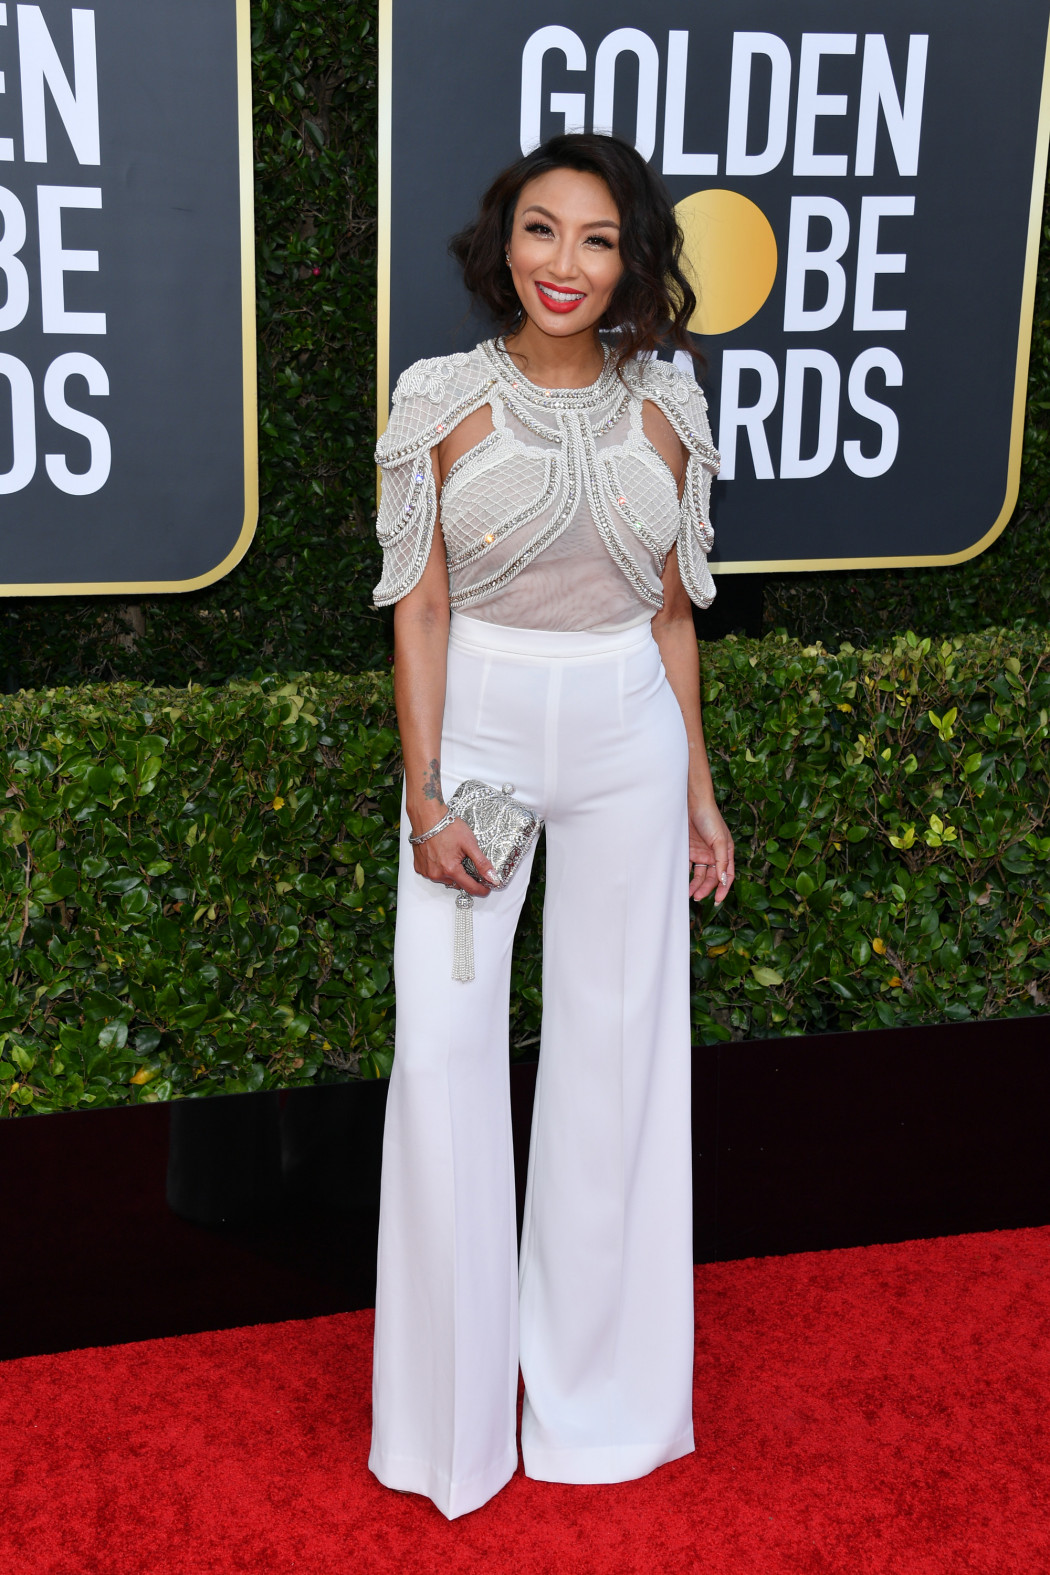 Golden Globes 2020 : les plus beaux looks du tapis rouge - 9